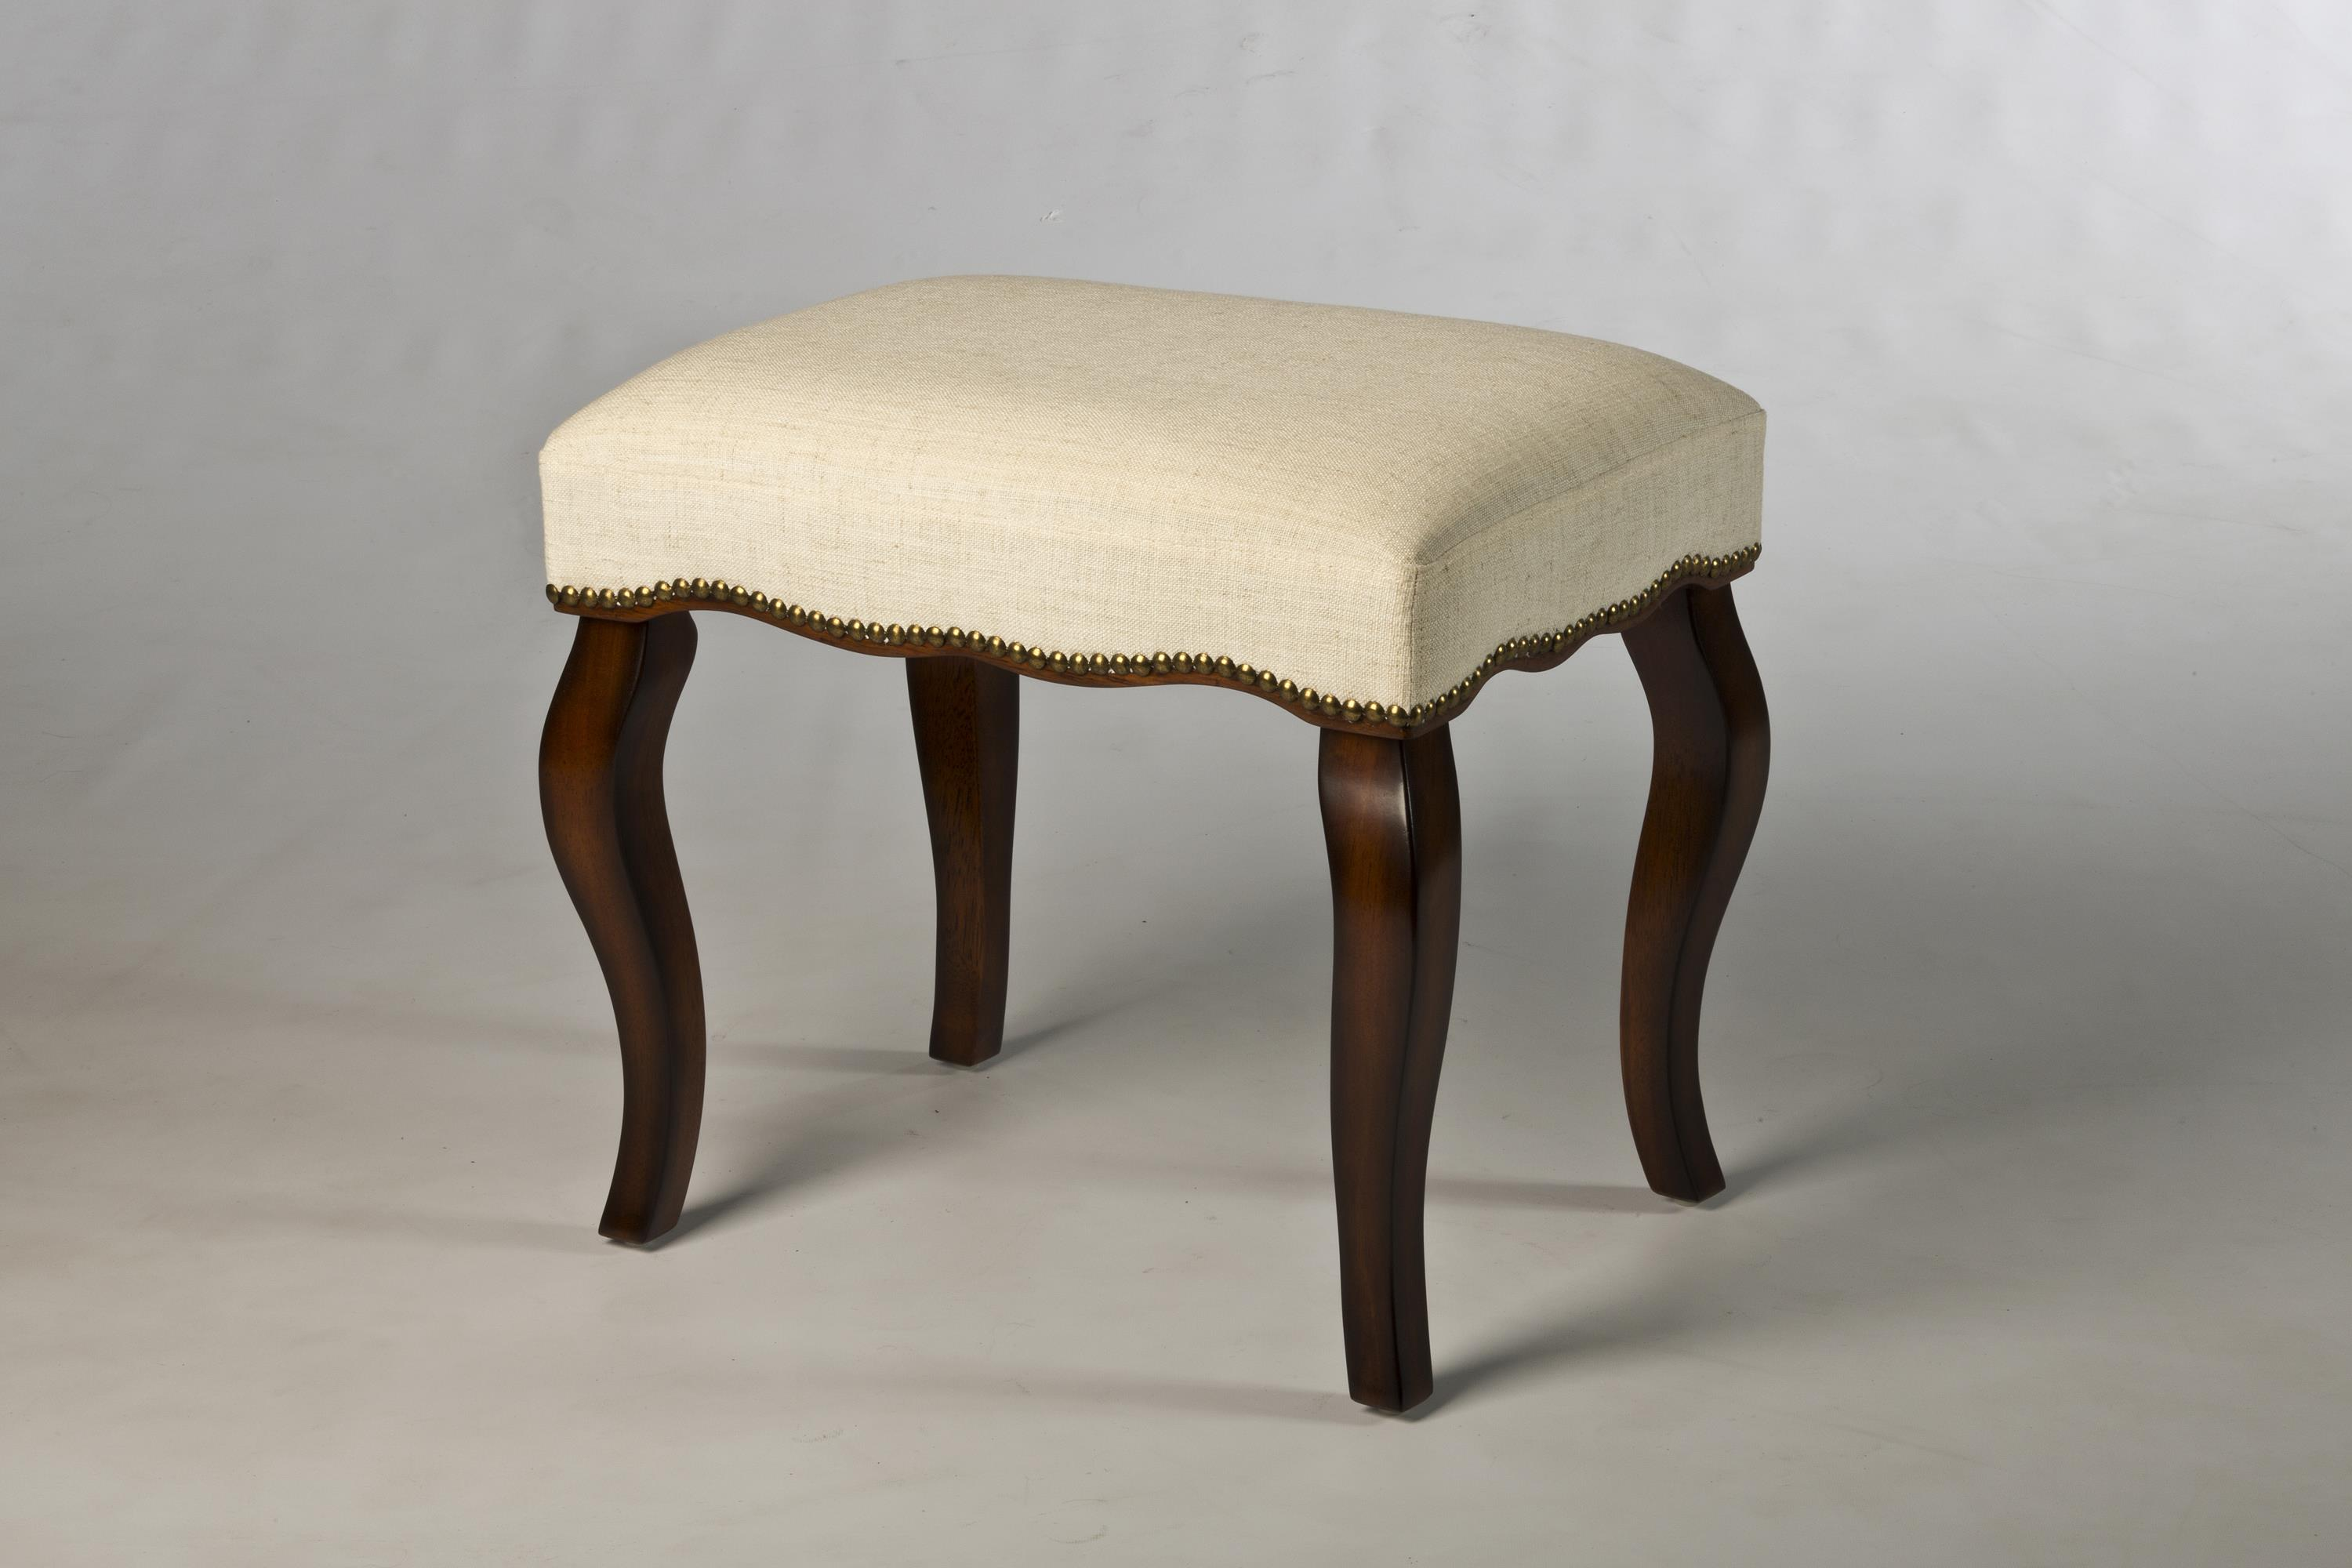 Vanity Chairs Vanity Stools Hamilton Backless Vanity Stool With Curved Legs By Hillsdale At Boulevard Home Furnishings